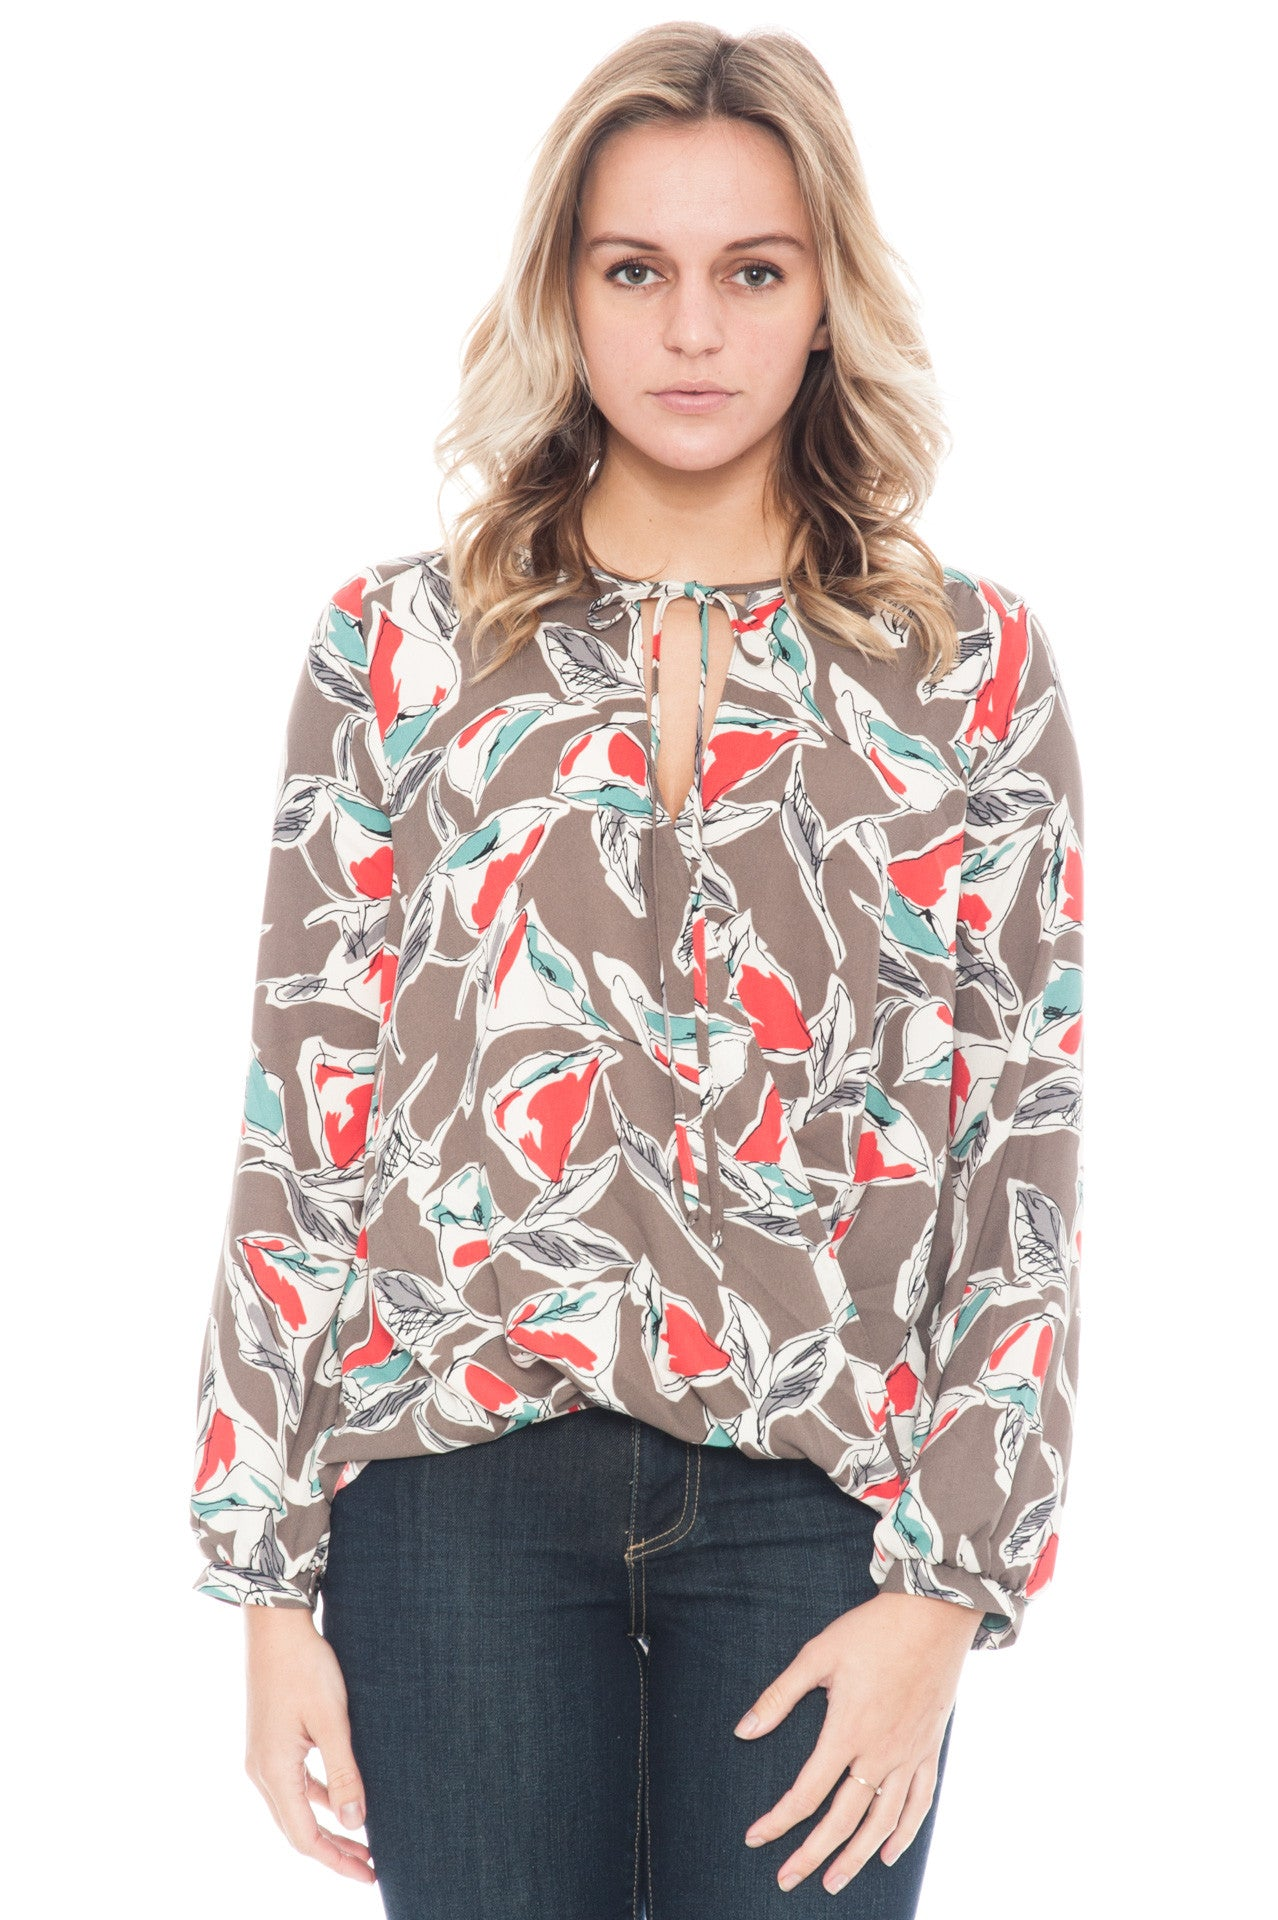 Blouse - Overlap Front Printed Top with Neck Tie By Lush